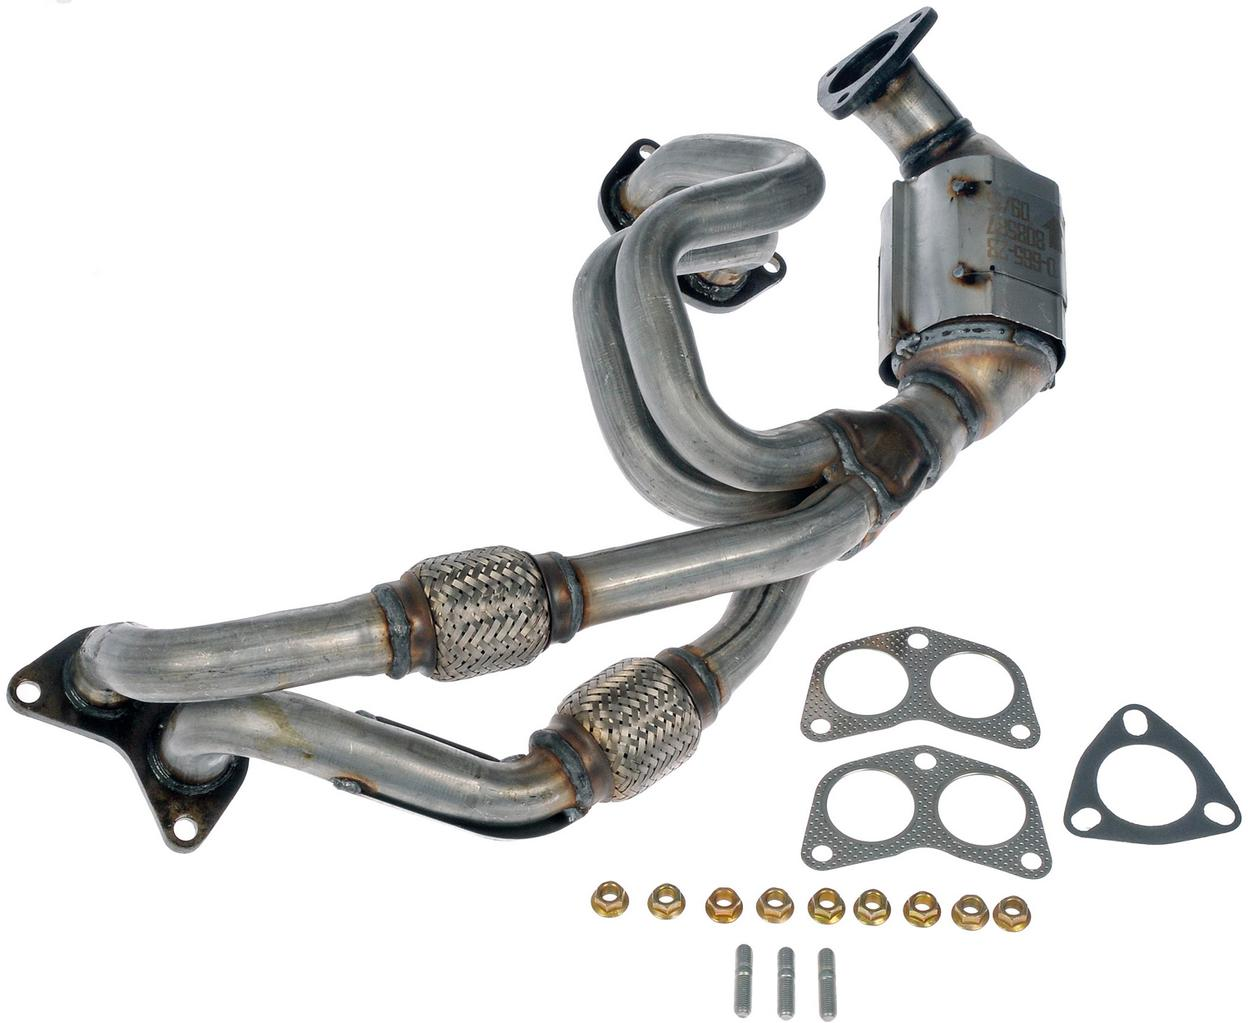 CARB Compliant Dorman 673-930 Exhaust Manifold with Integrated Catalytic Converter